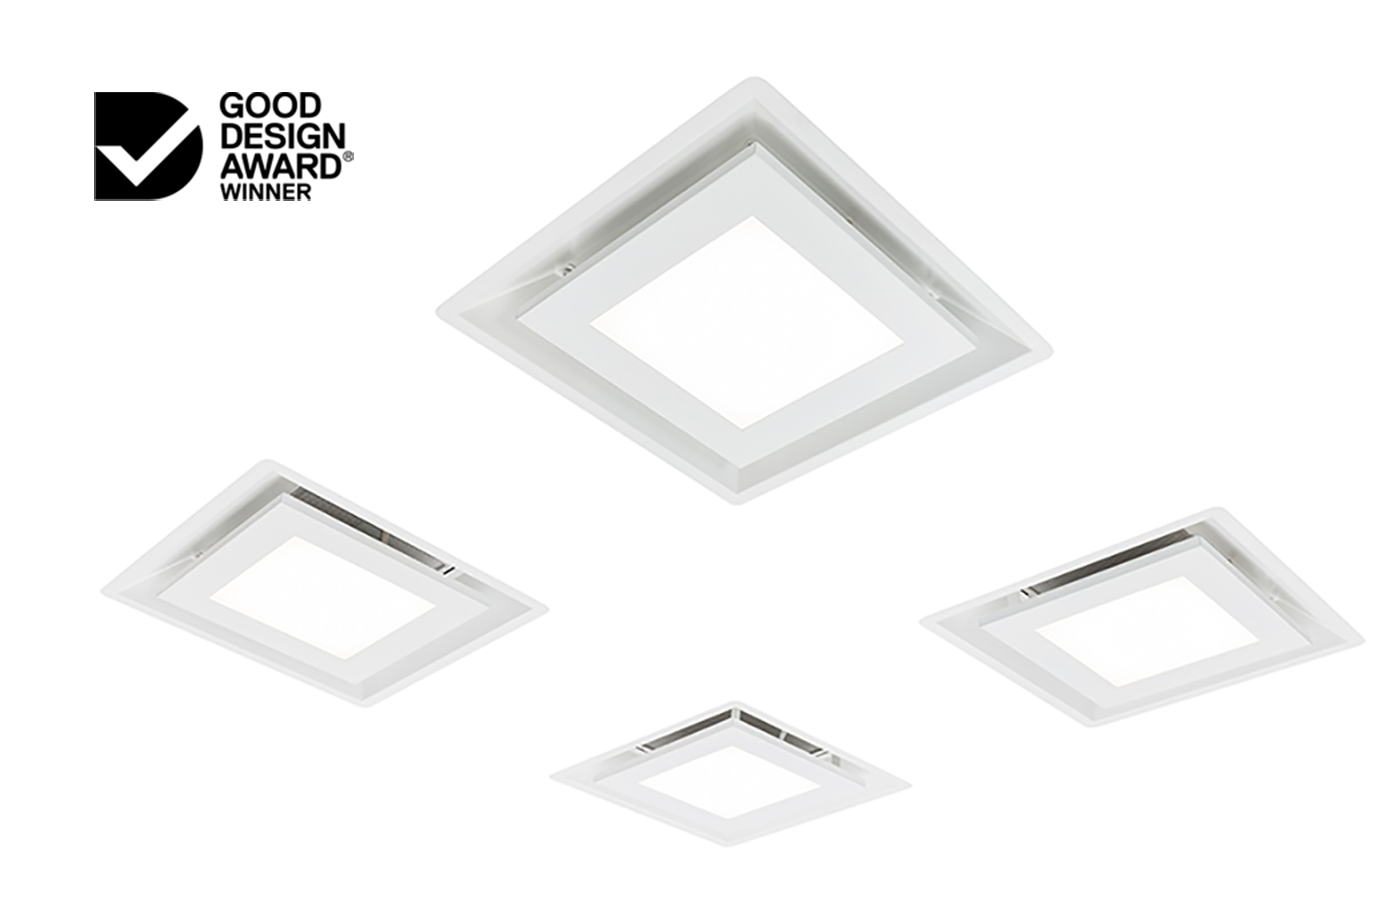 Schweigen's Paradigma Wins 2020 Good Design Award